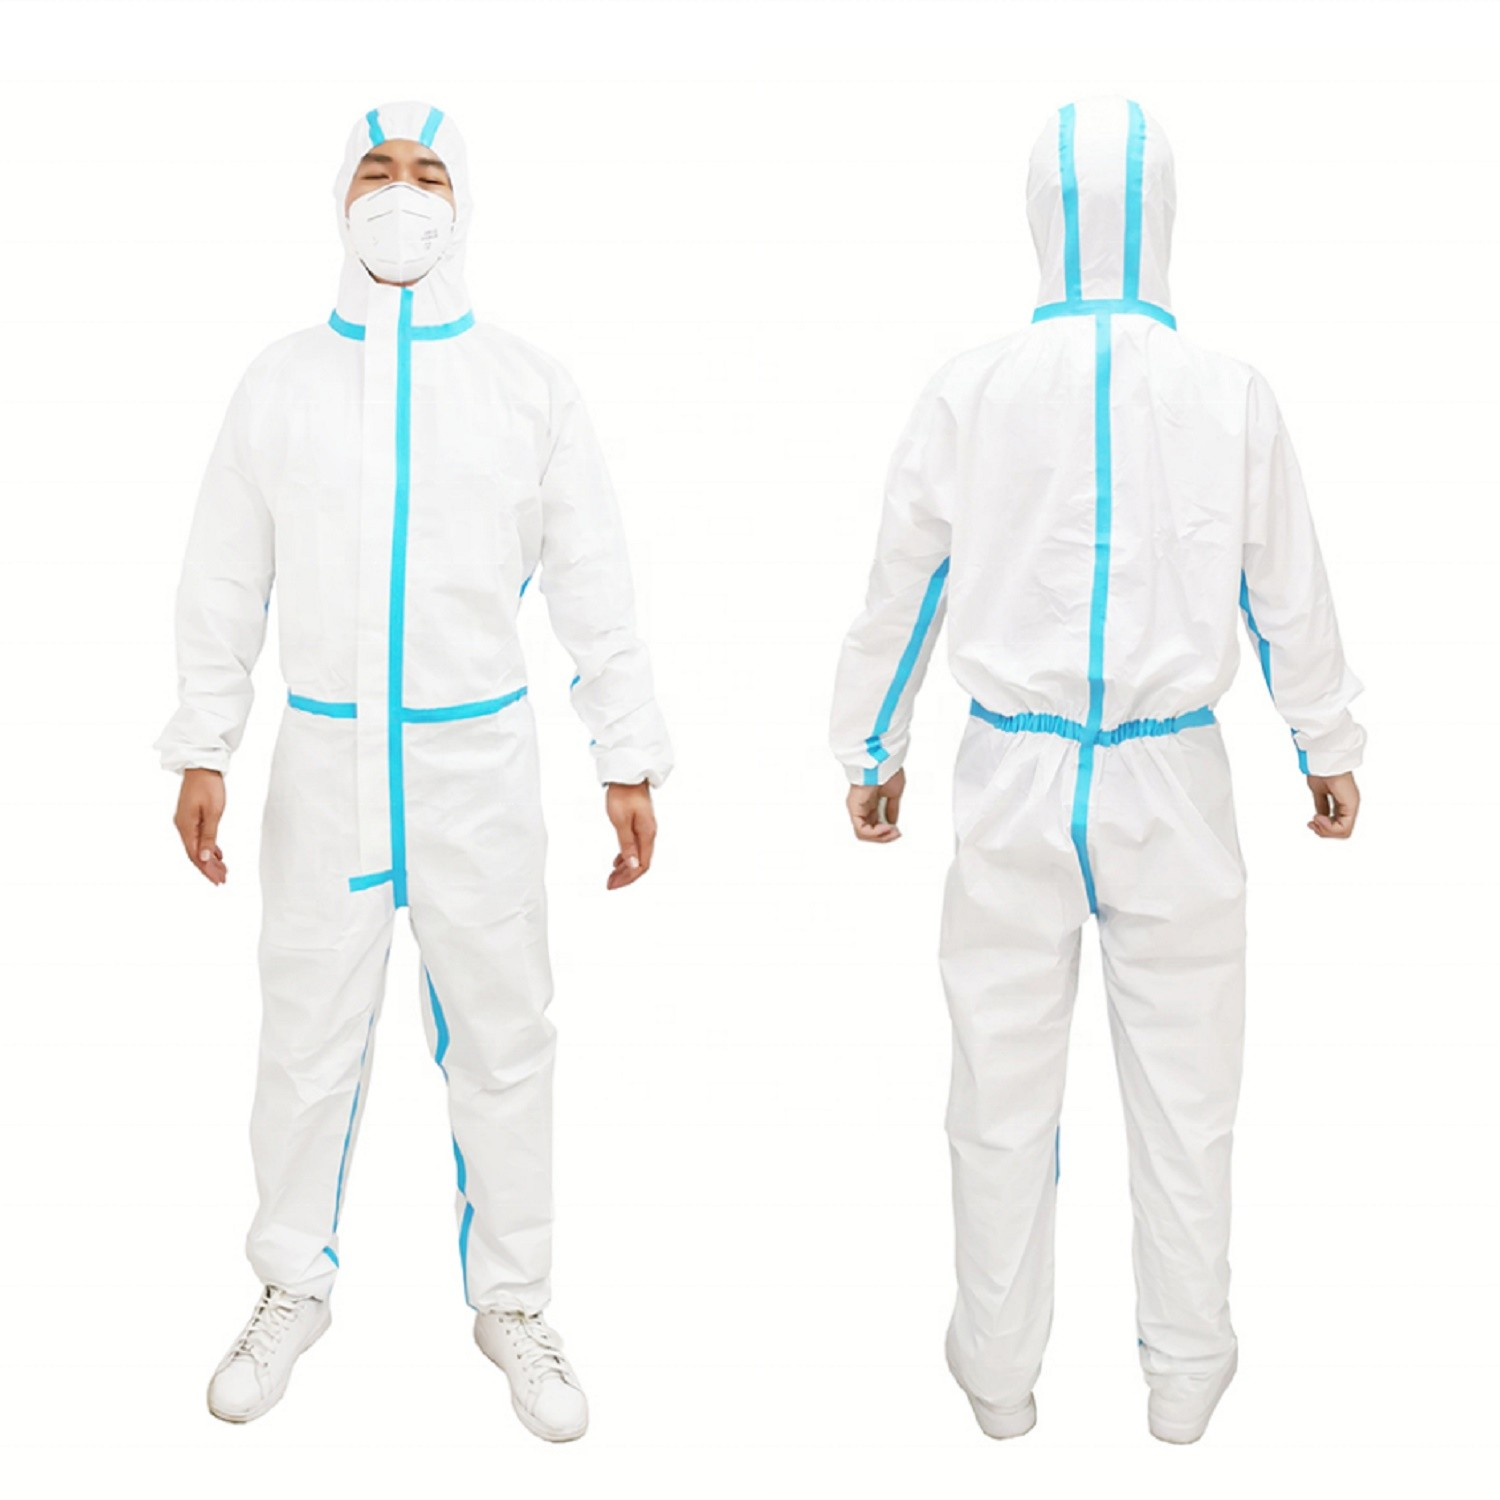 Waterproof clothes medical surgical isolation gown protection coveralls